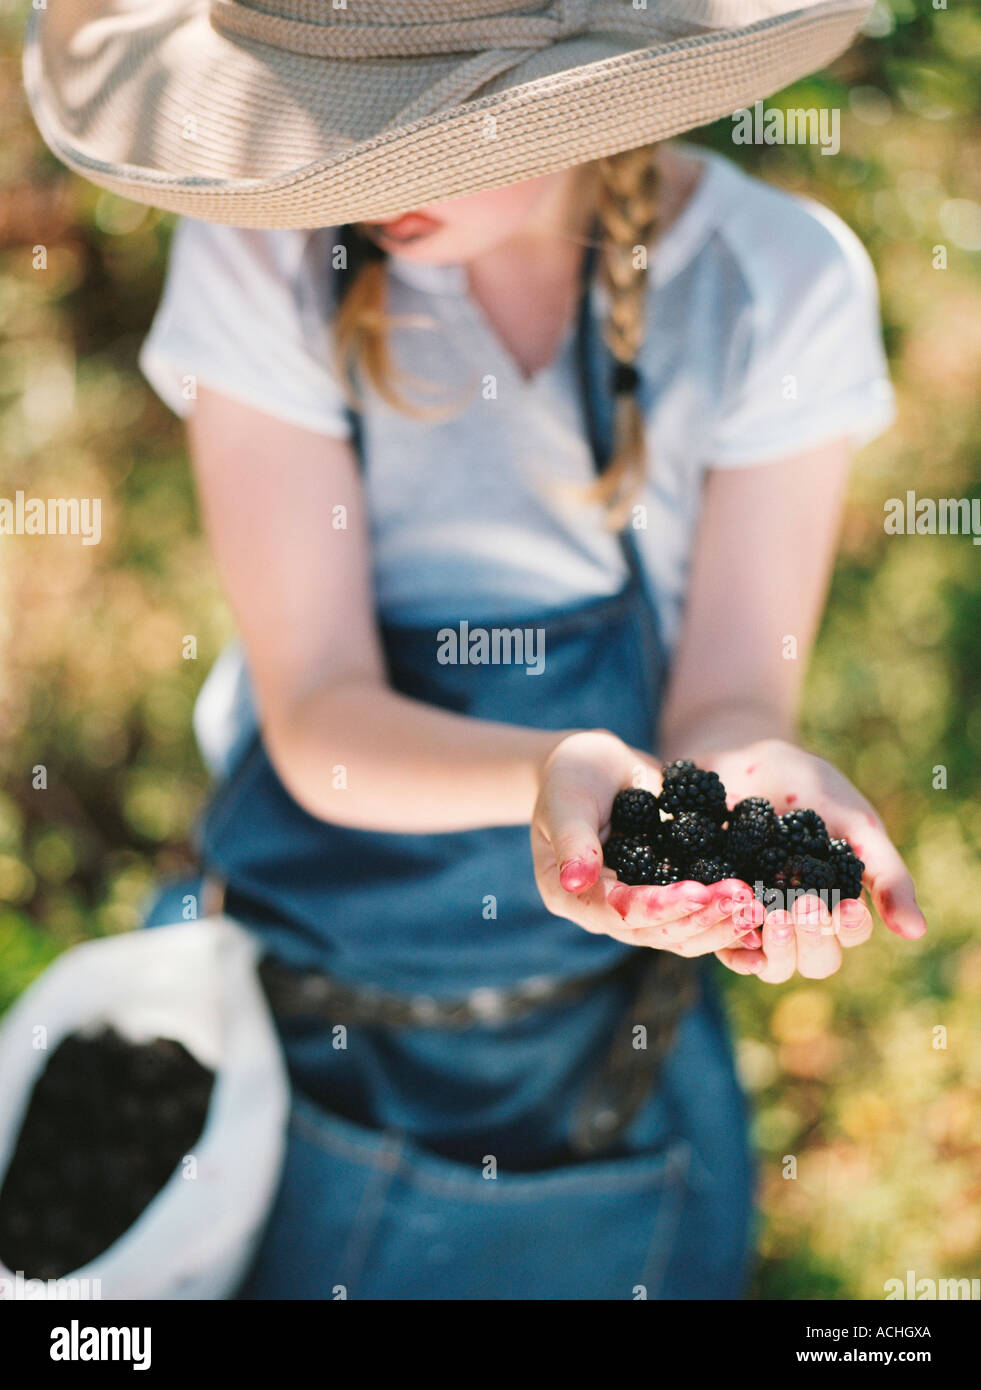 Young girl licks her lips as she shows off wild blackberries she has picked. - Stock Image